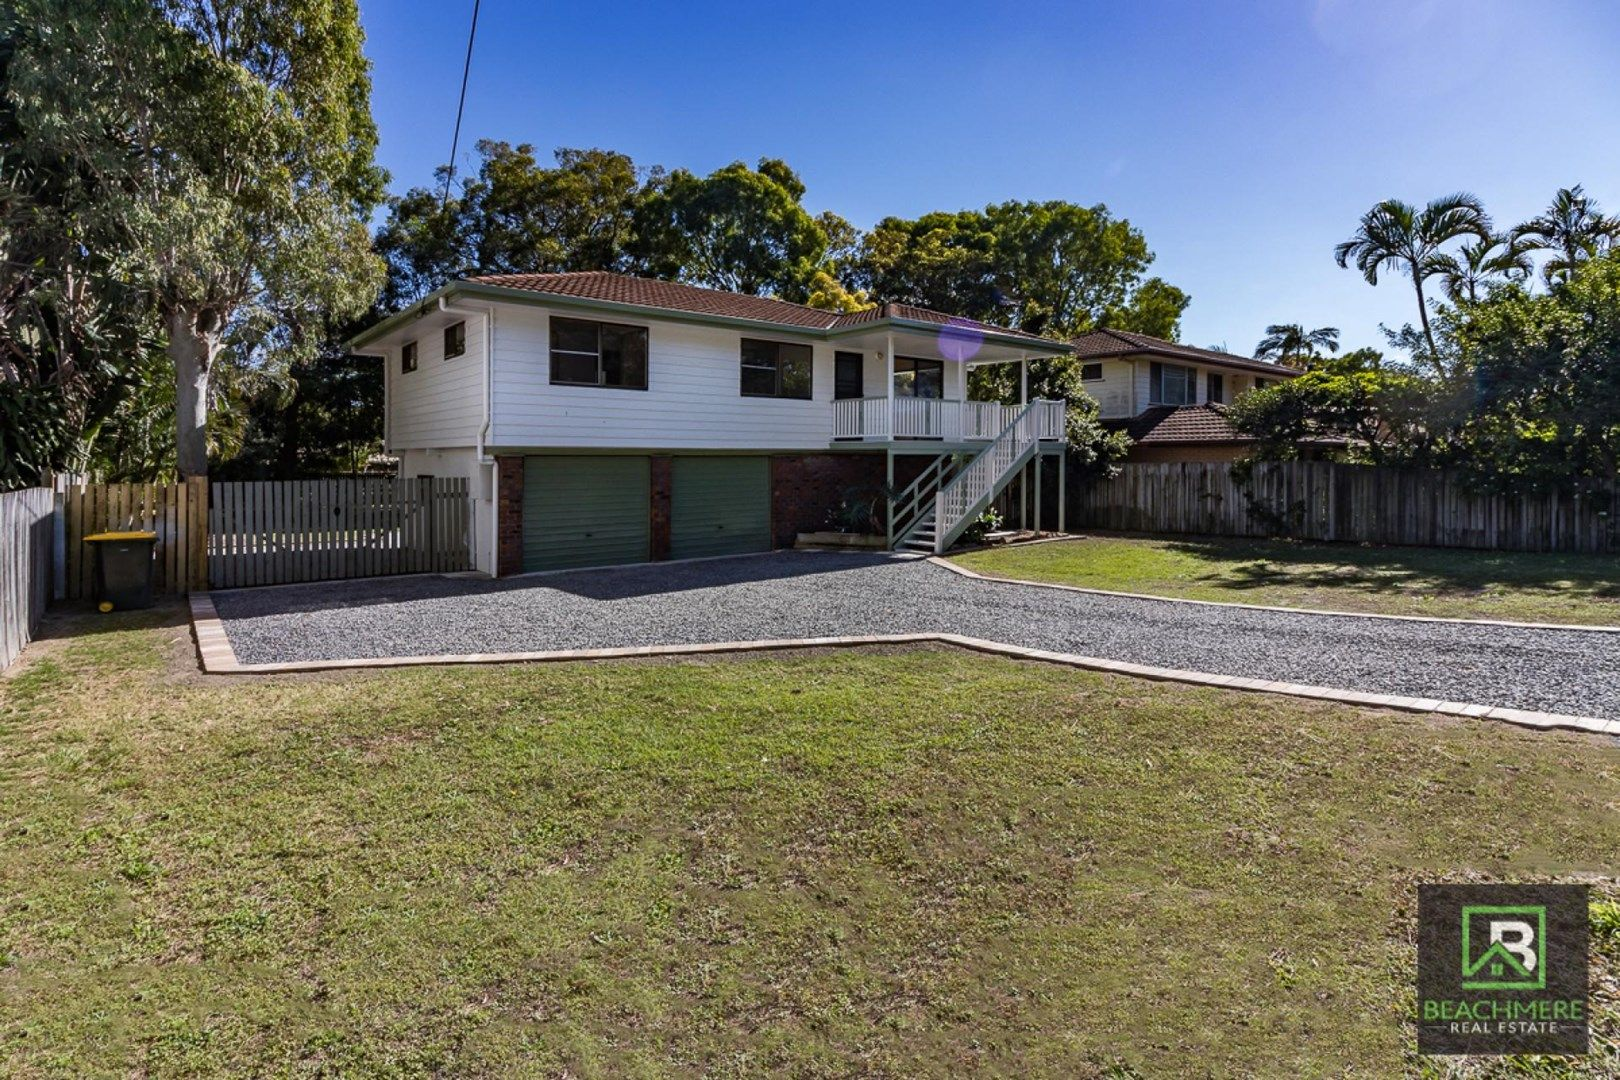 Beachmere QLD 4510, Image 0